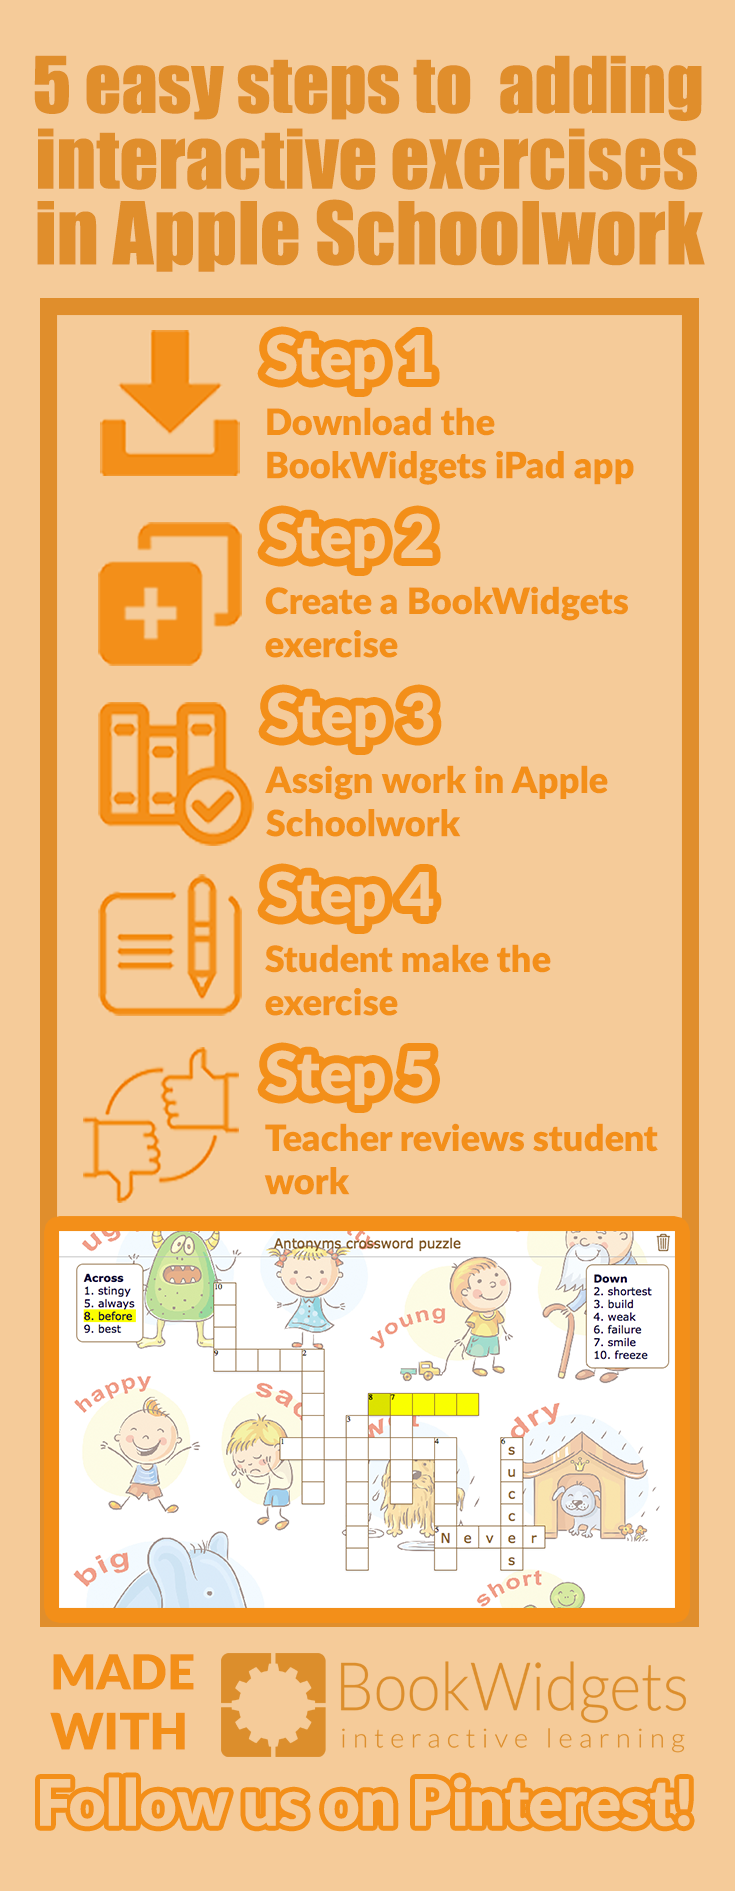 5 easy steps to adding interactive exercises in Apple Schoolwork